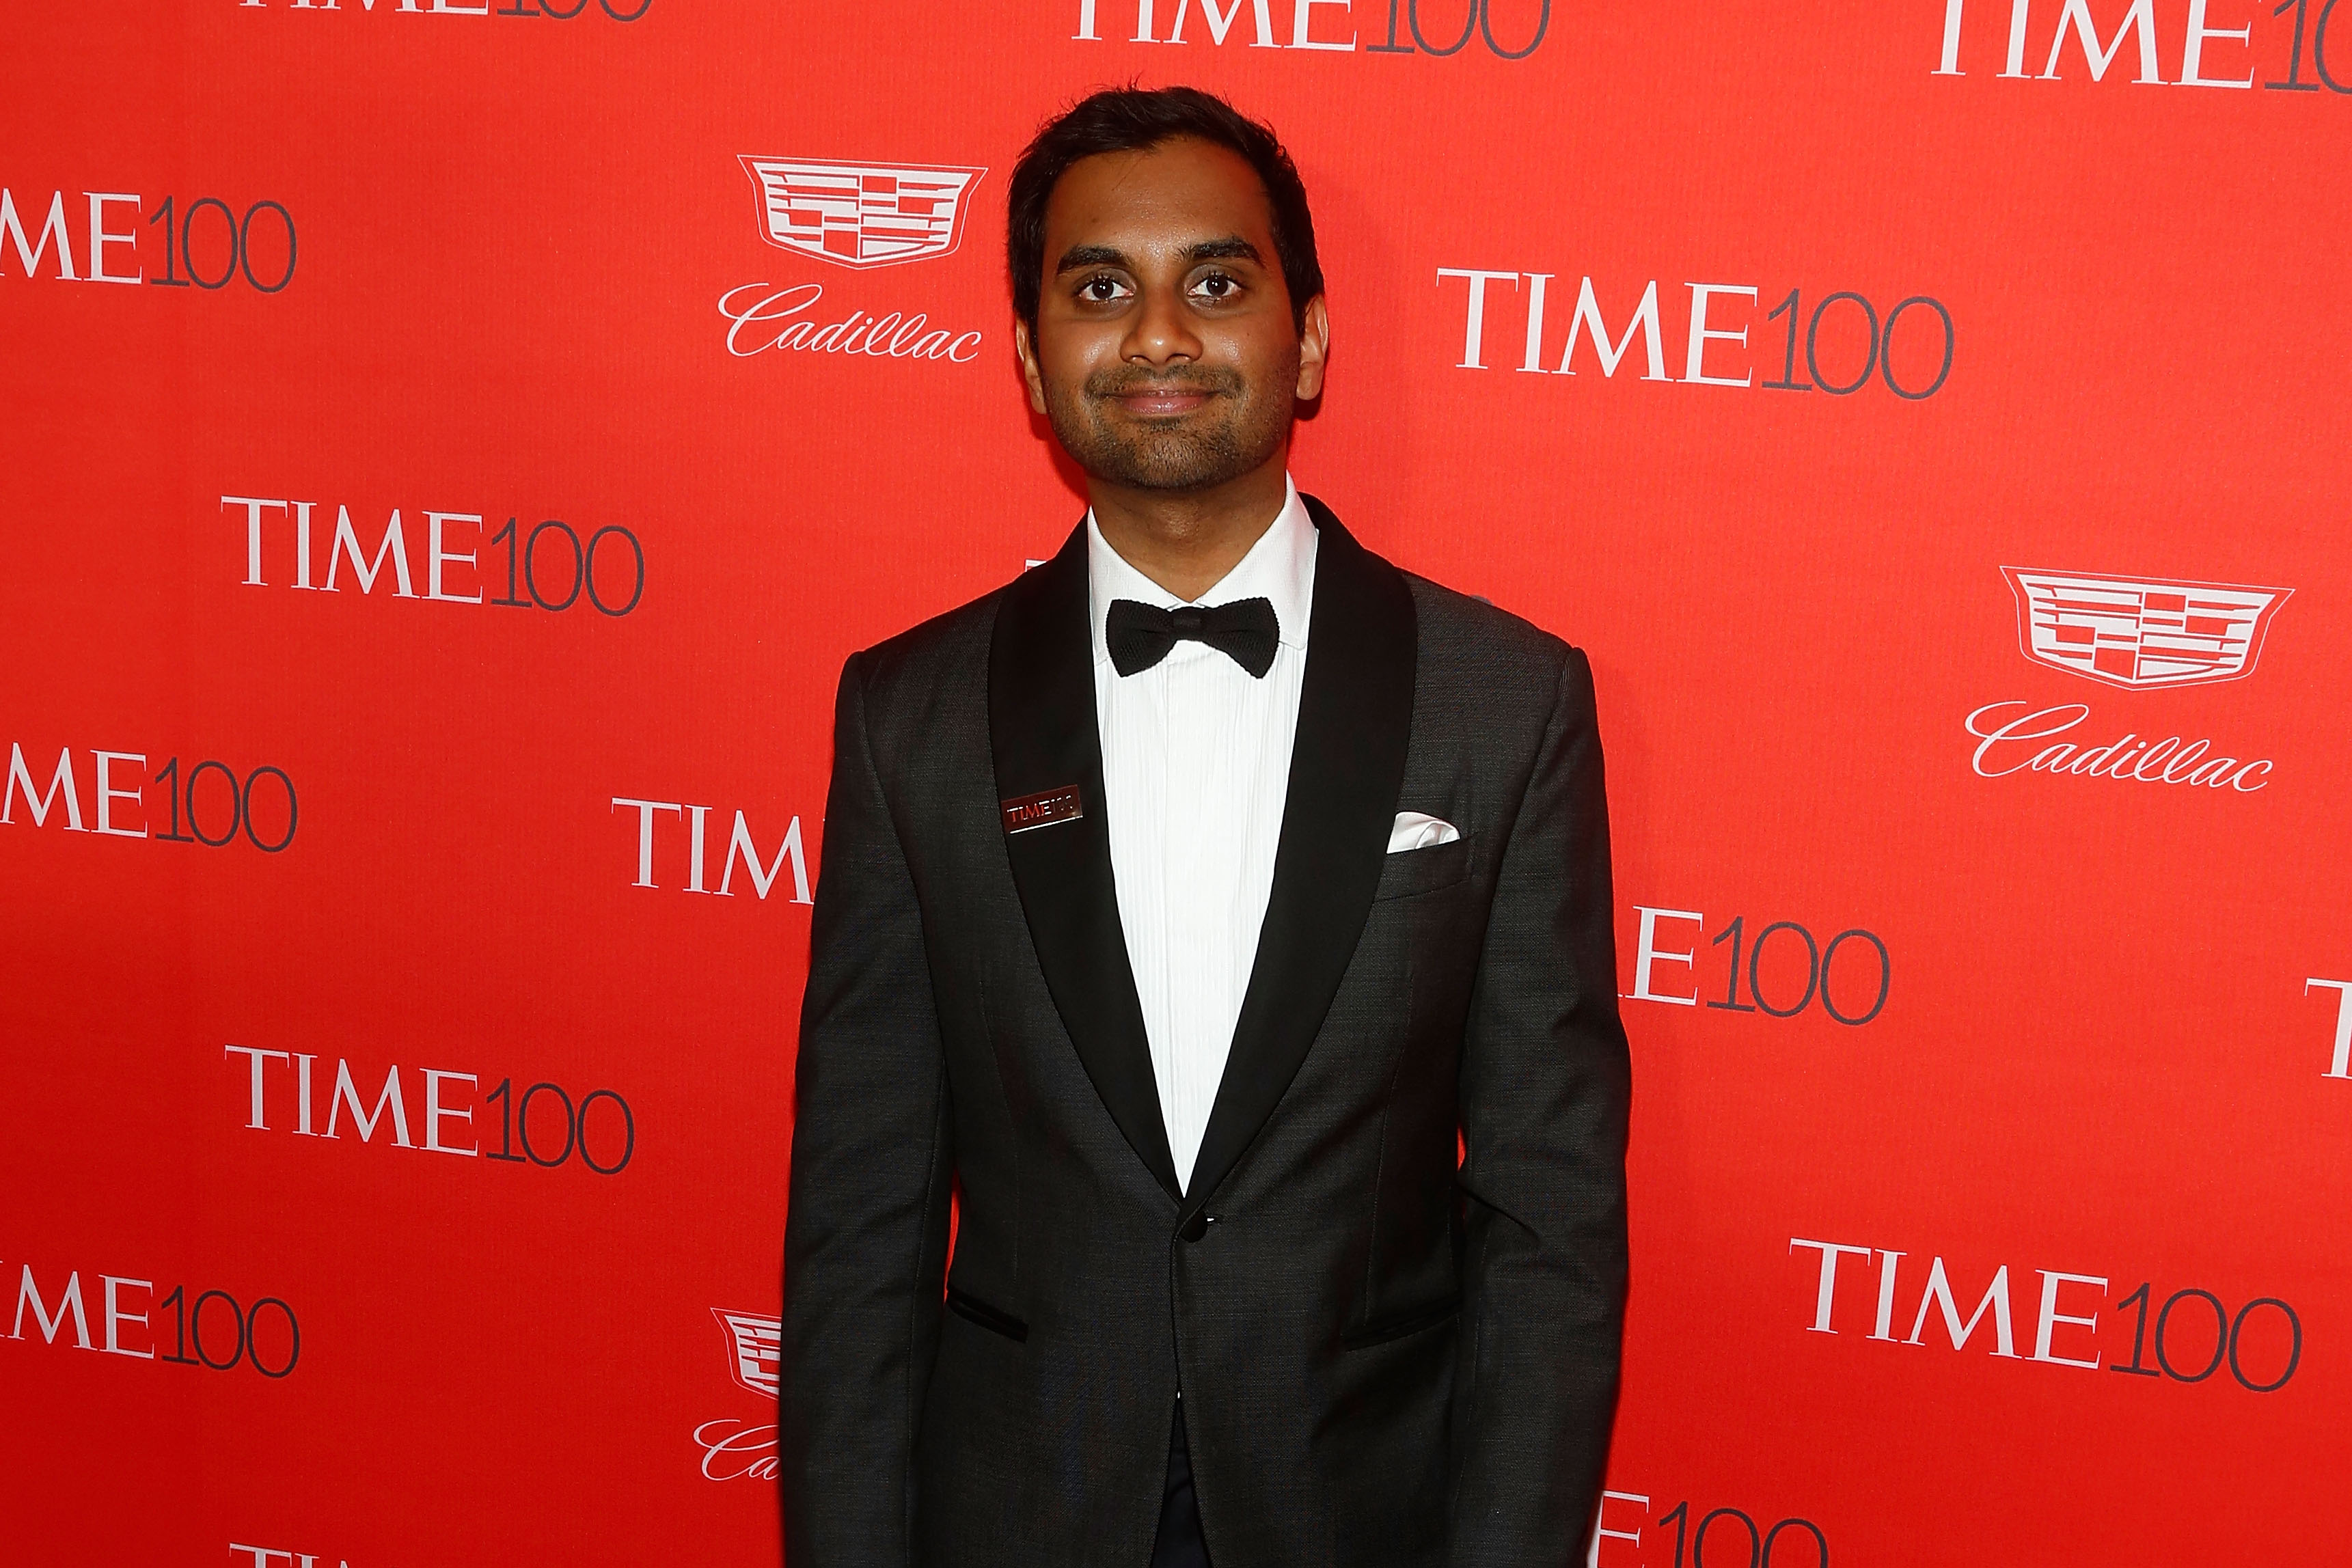 Comedian Aziz Ansari attends the 2016 Time 100 Gala at Lincoln Center on April 26, 2016 in New York City.